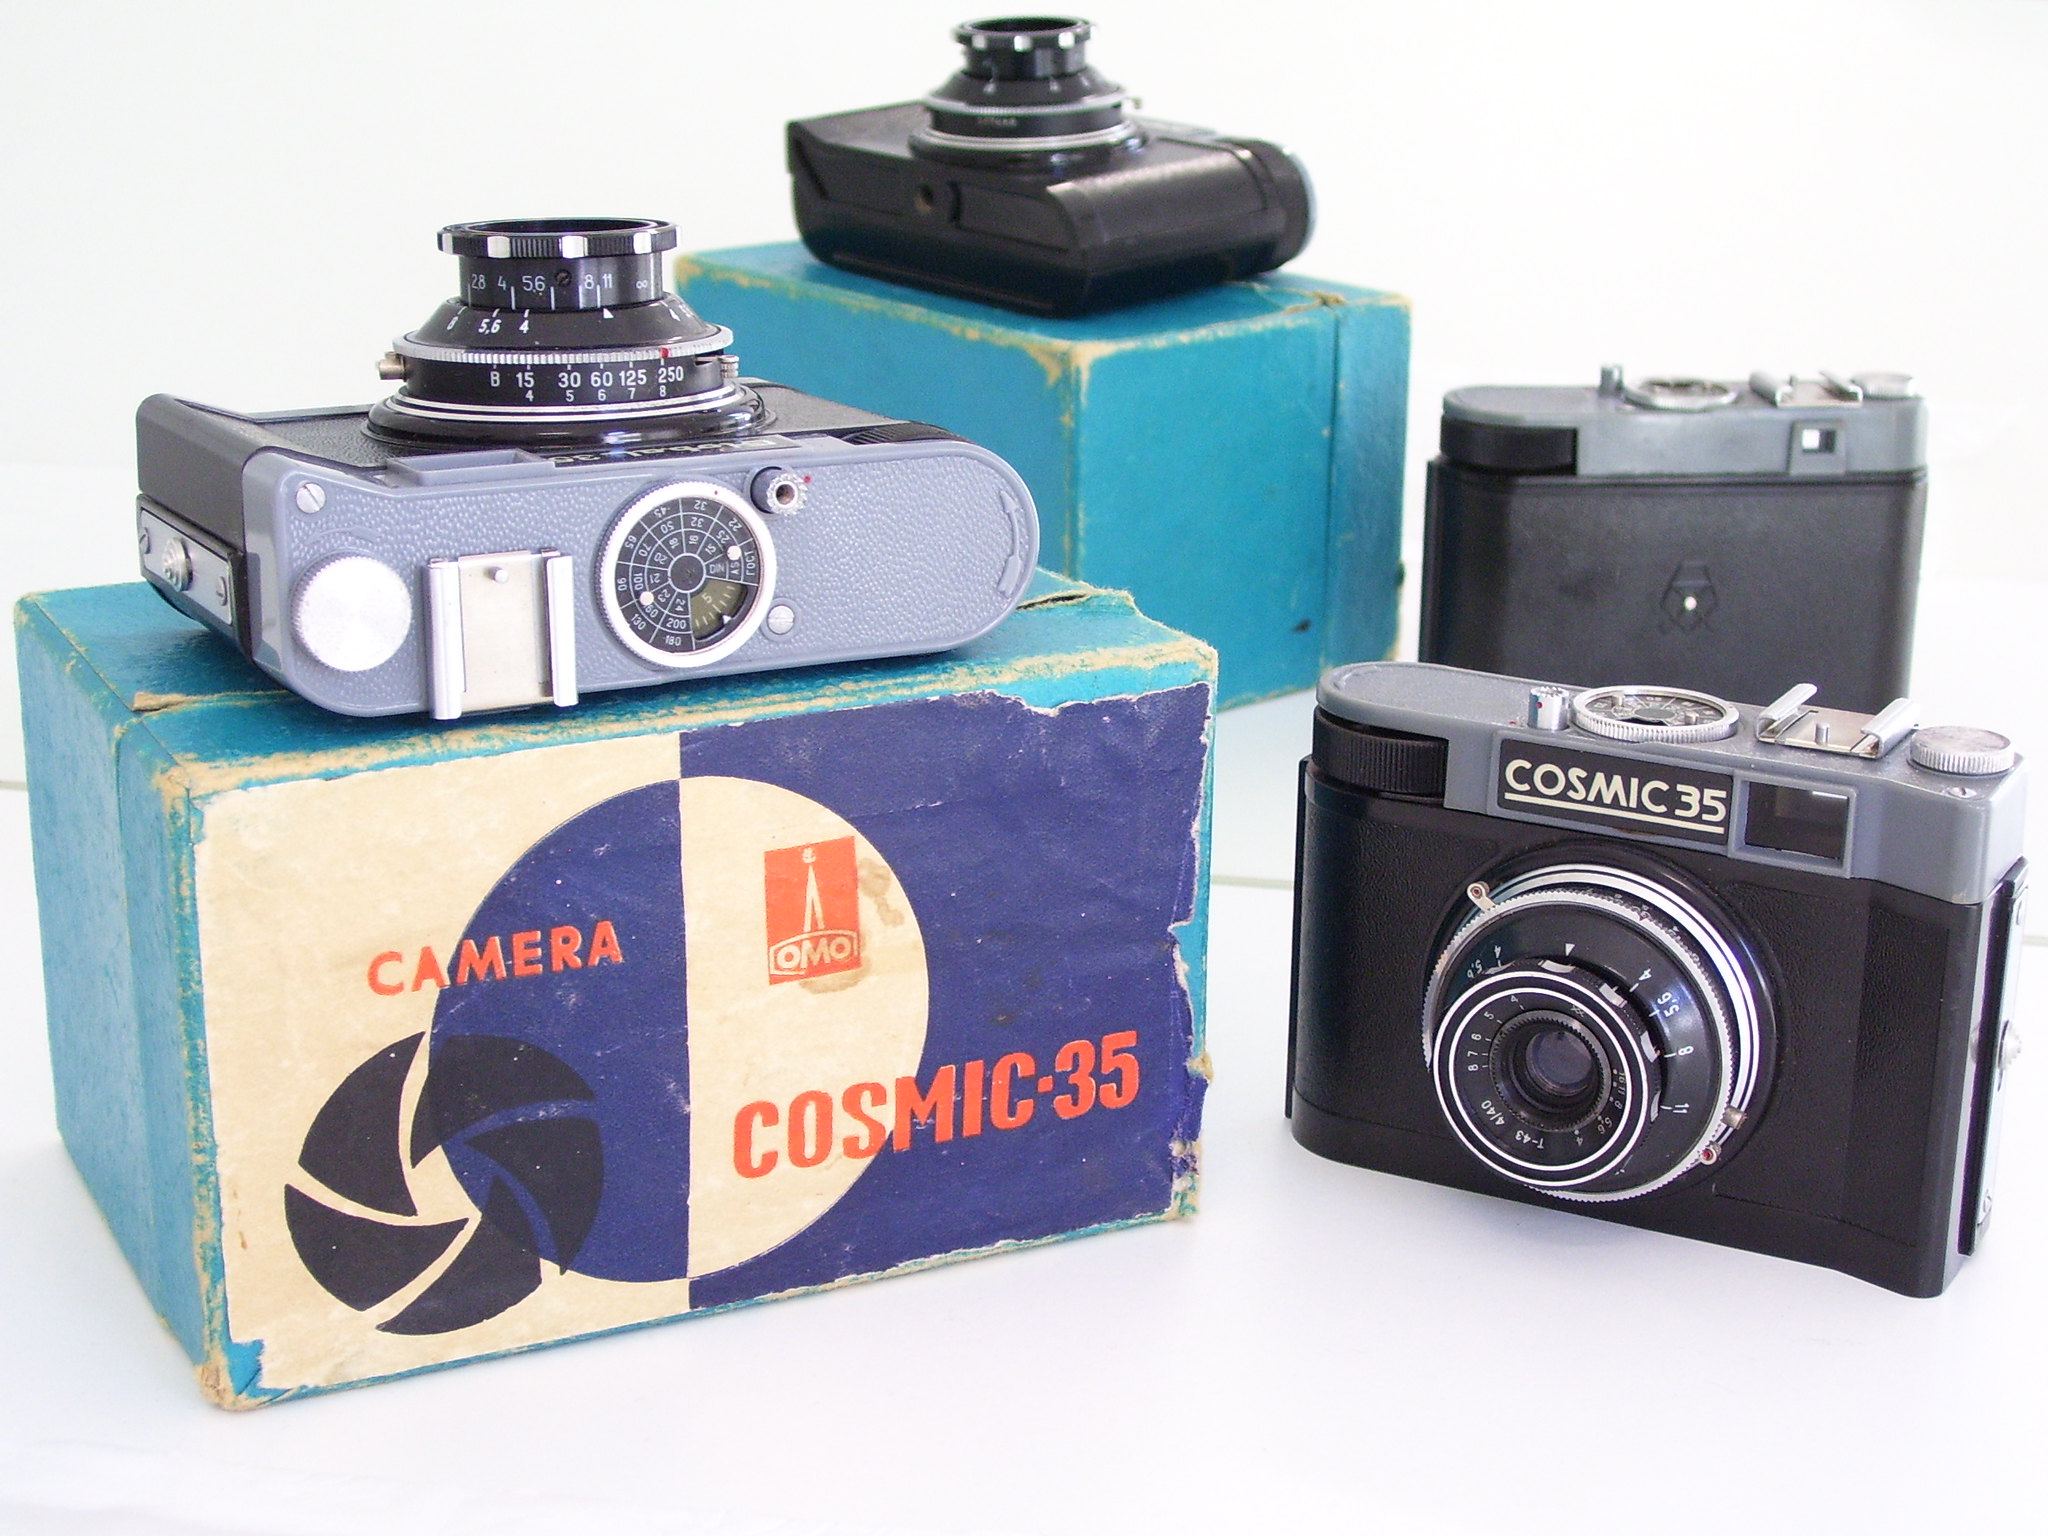 Cosmic 35 cameras and box (Pic: Ozbox/Flickr)